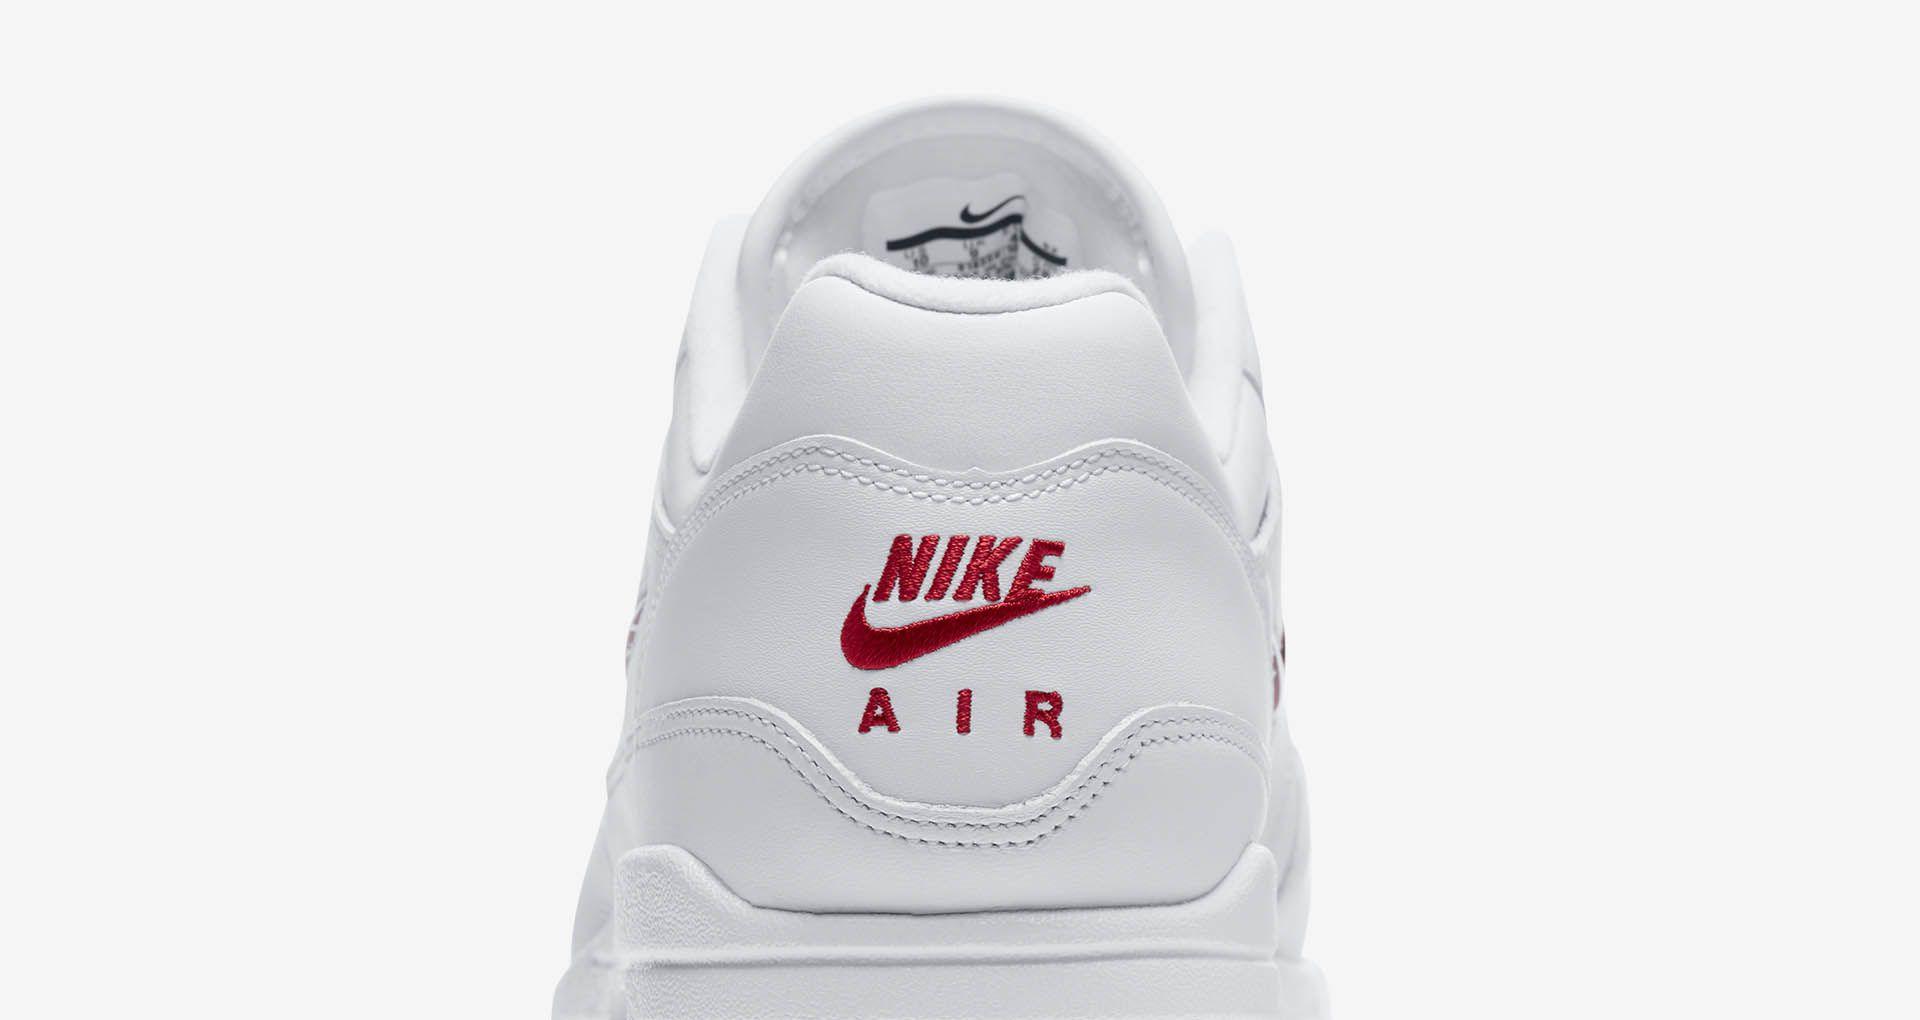 Nike Air Max 1 Premium SC WhiteUniversity Red For Sale